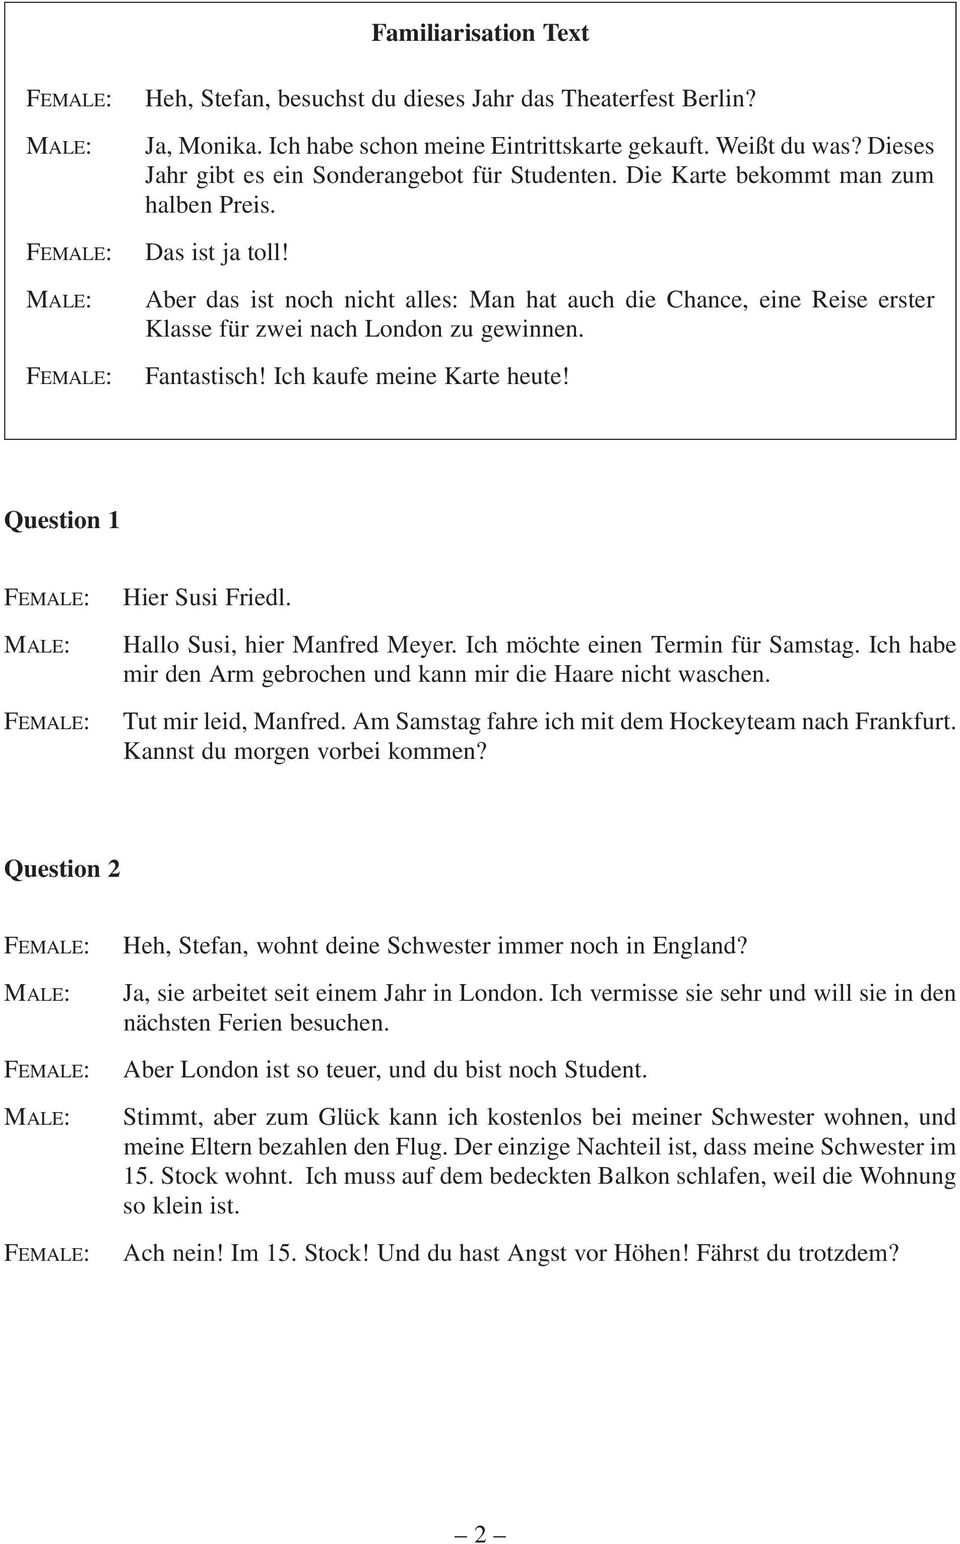 German Continuers Section I Listening And Responding